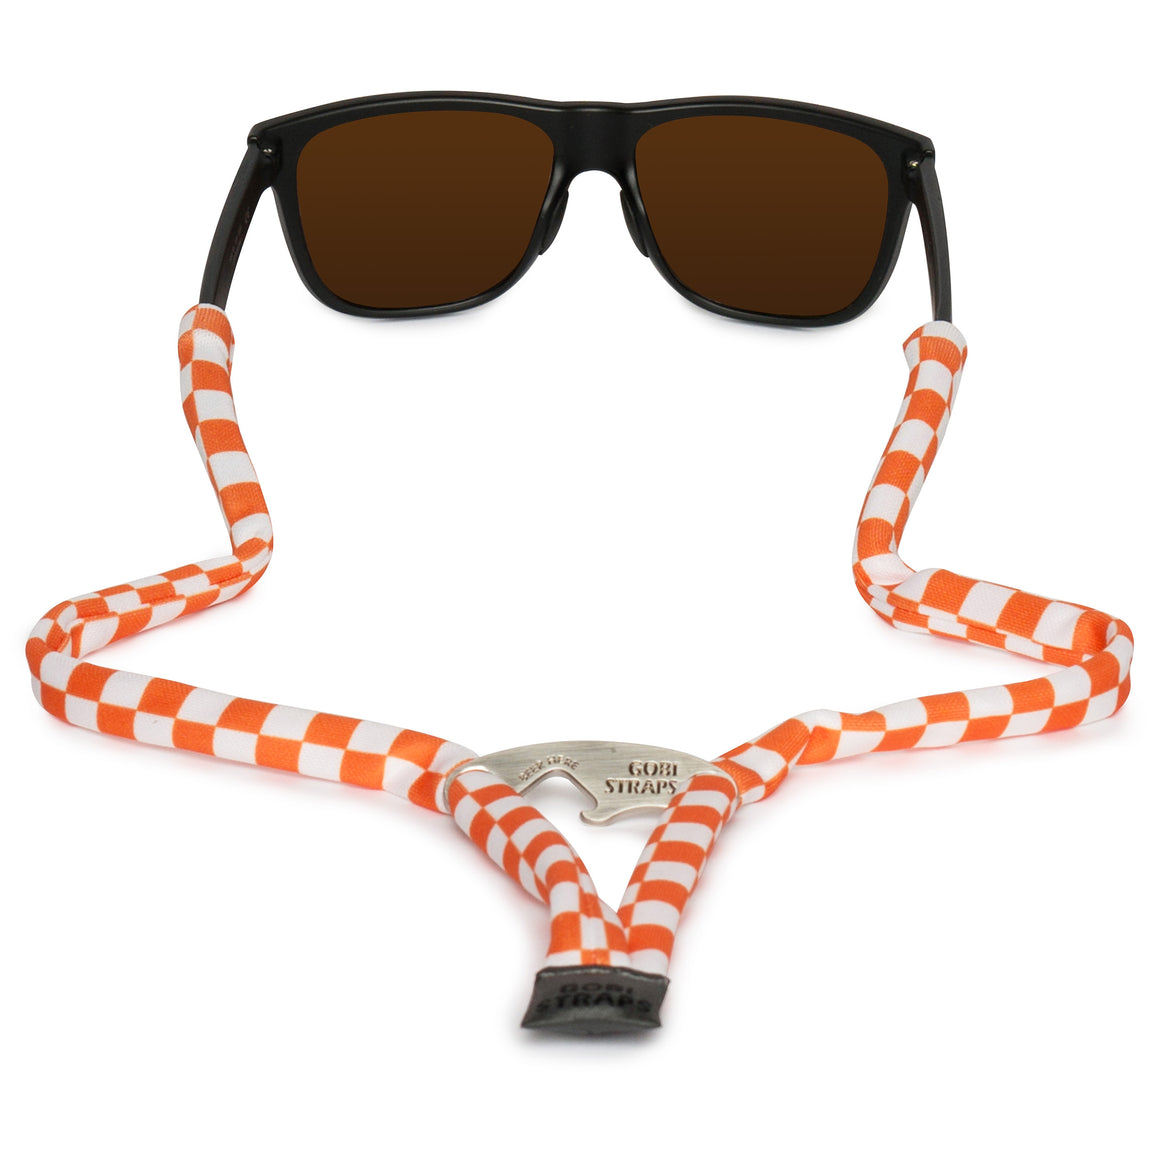 Sunglass Straps + Bottle Opener -- Orange & White